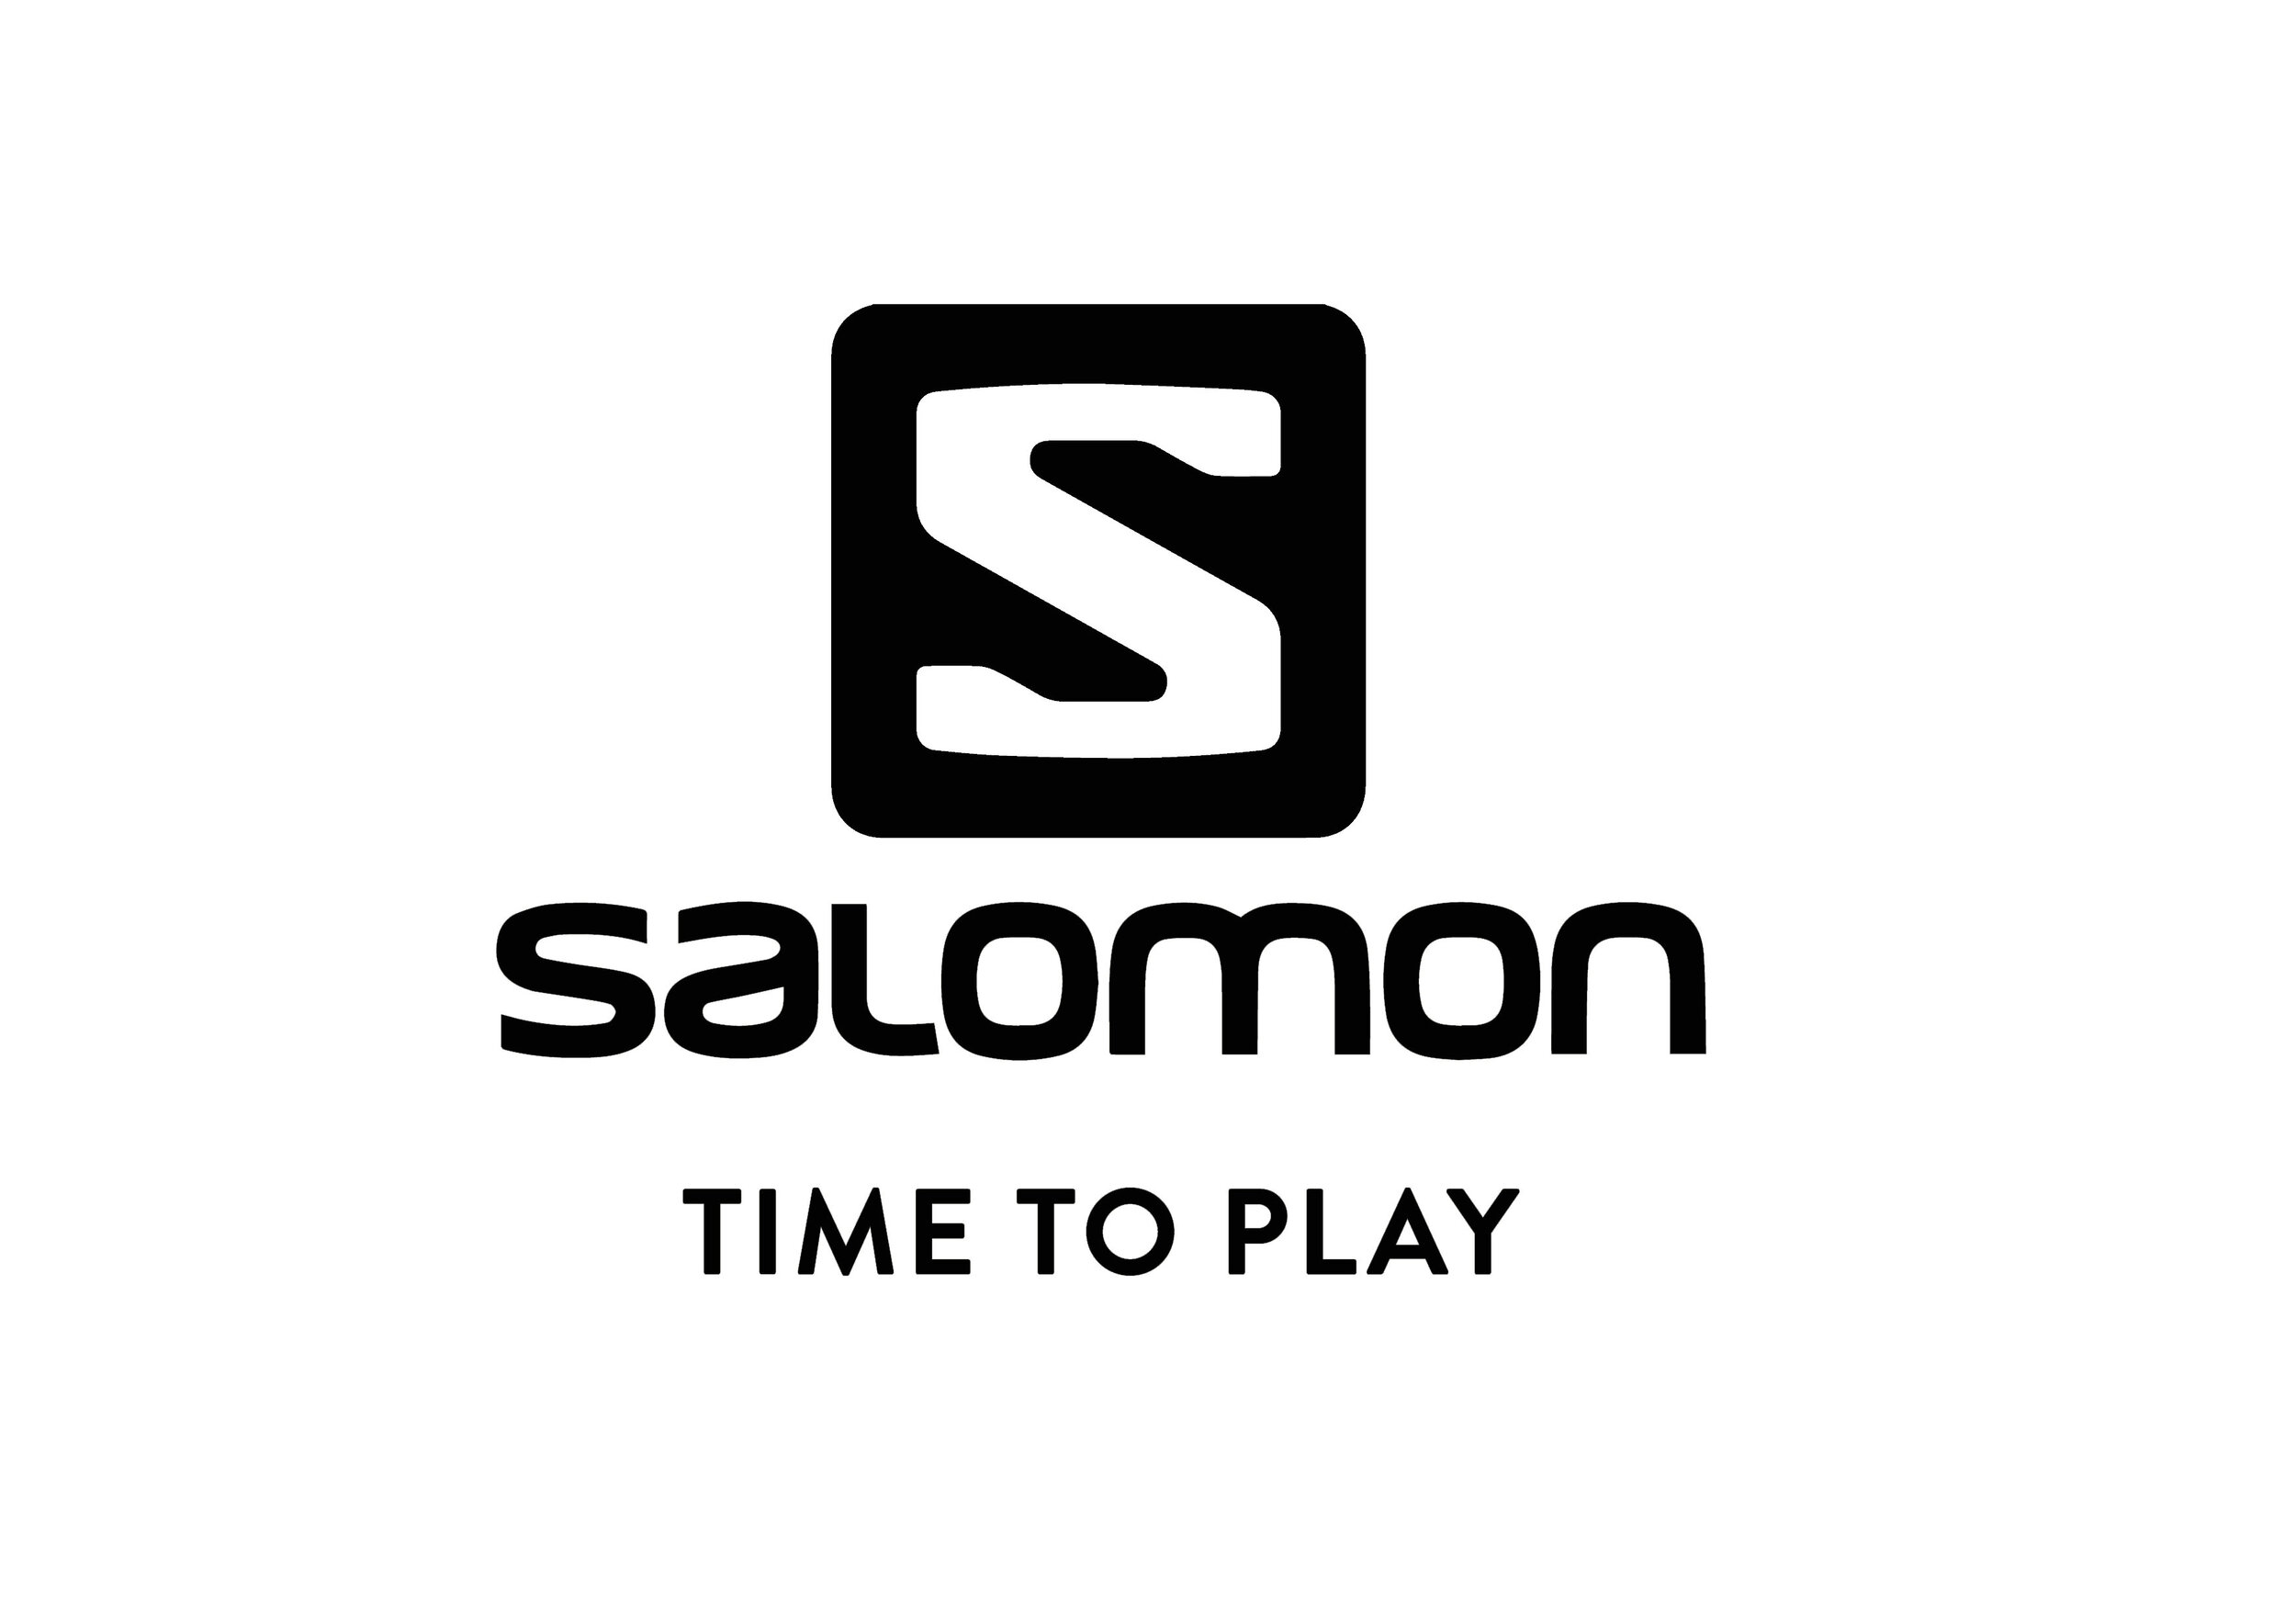 logo-Salomon time to play_BLACK.jpg